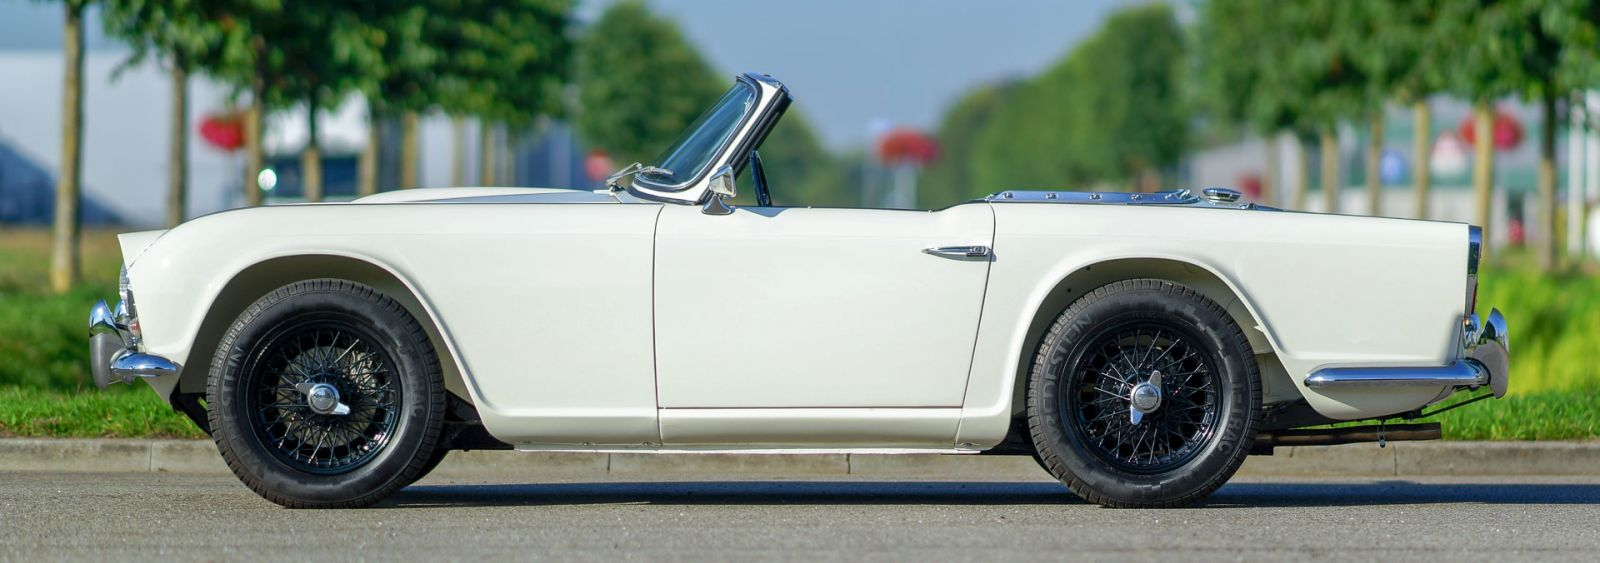 Triumph Tr 4 1964 Welcome To Classicargarage